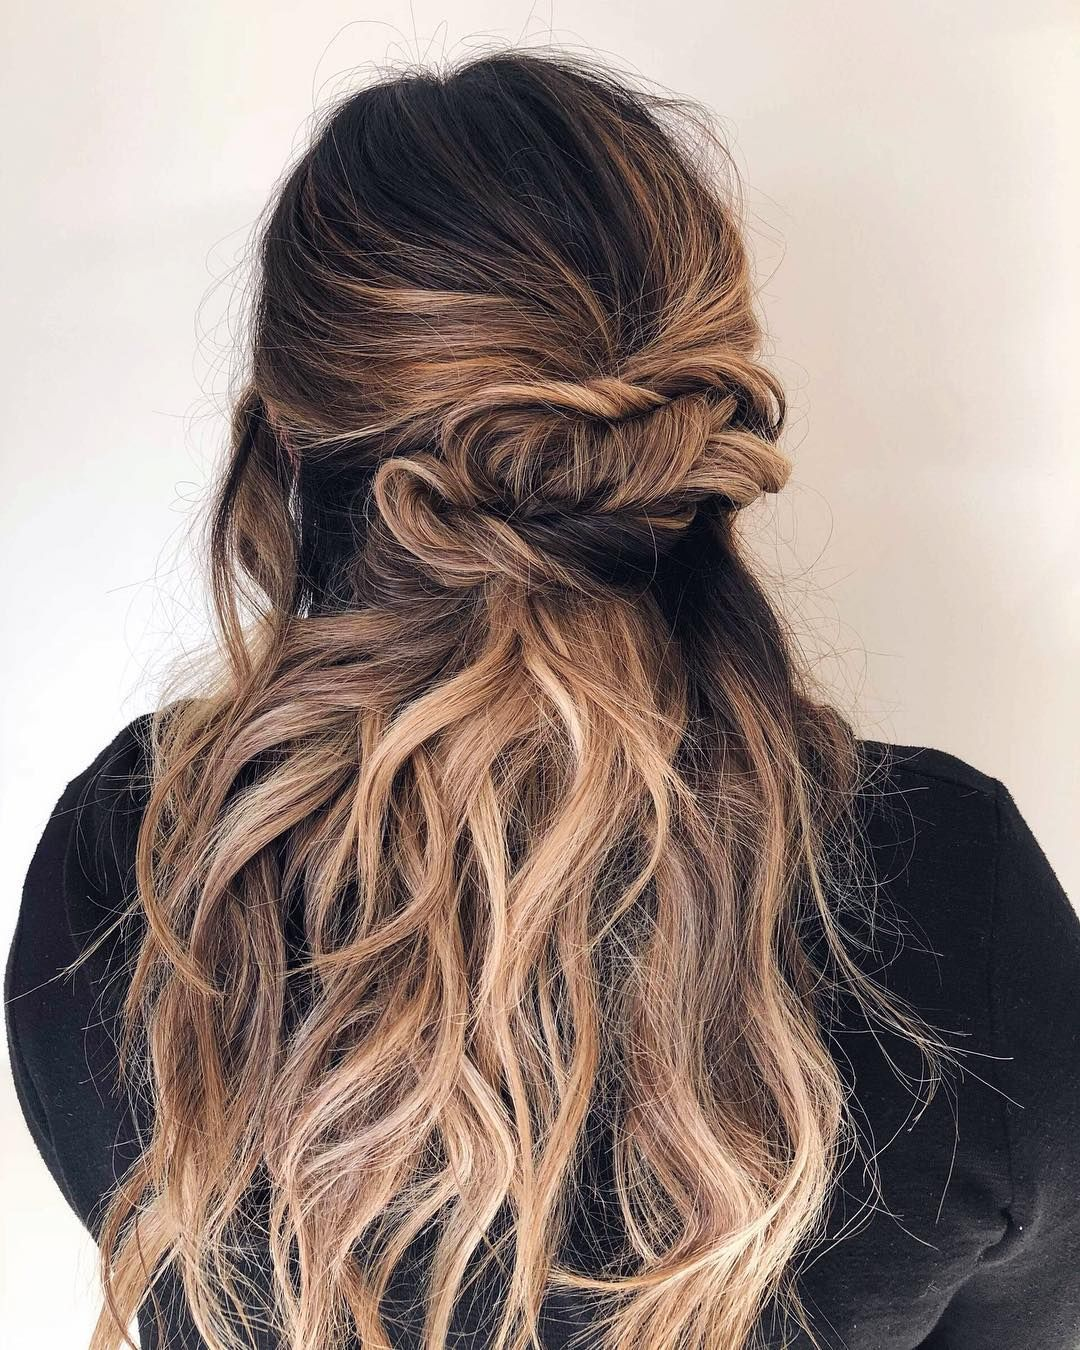 Fashion style Hairstyle formal for boys for lady